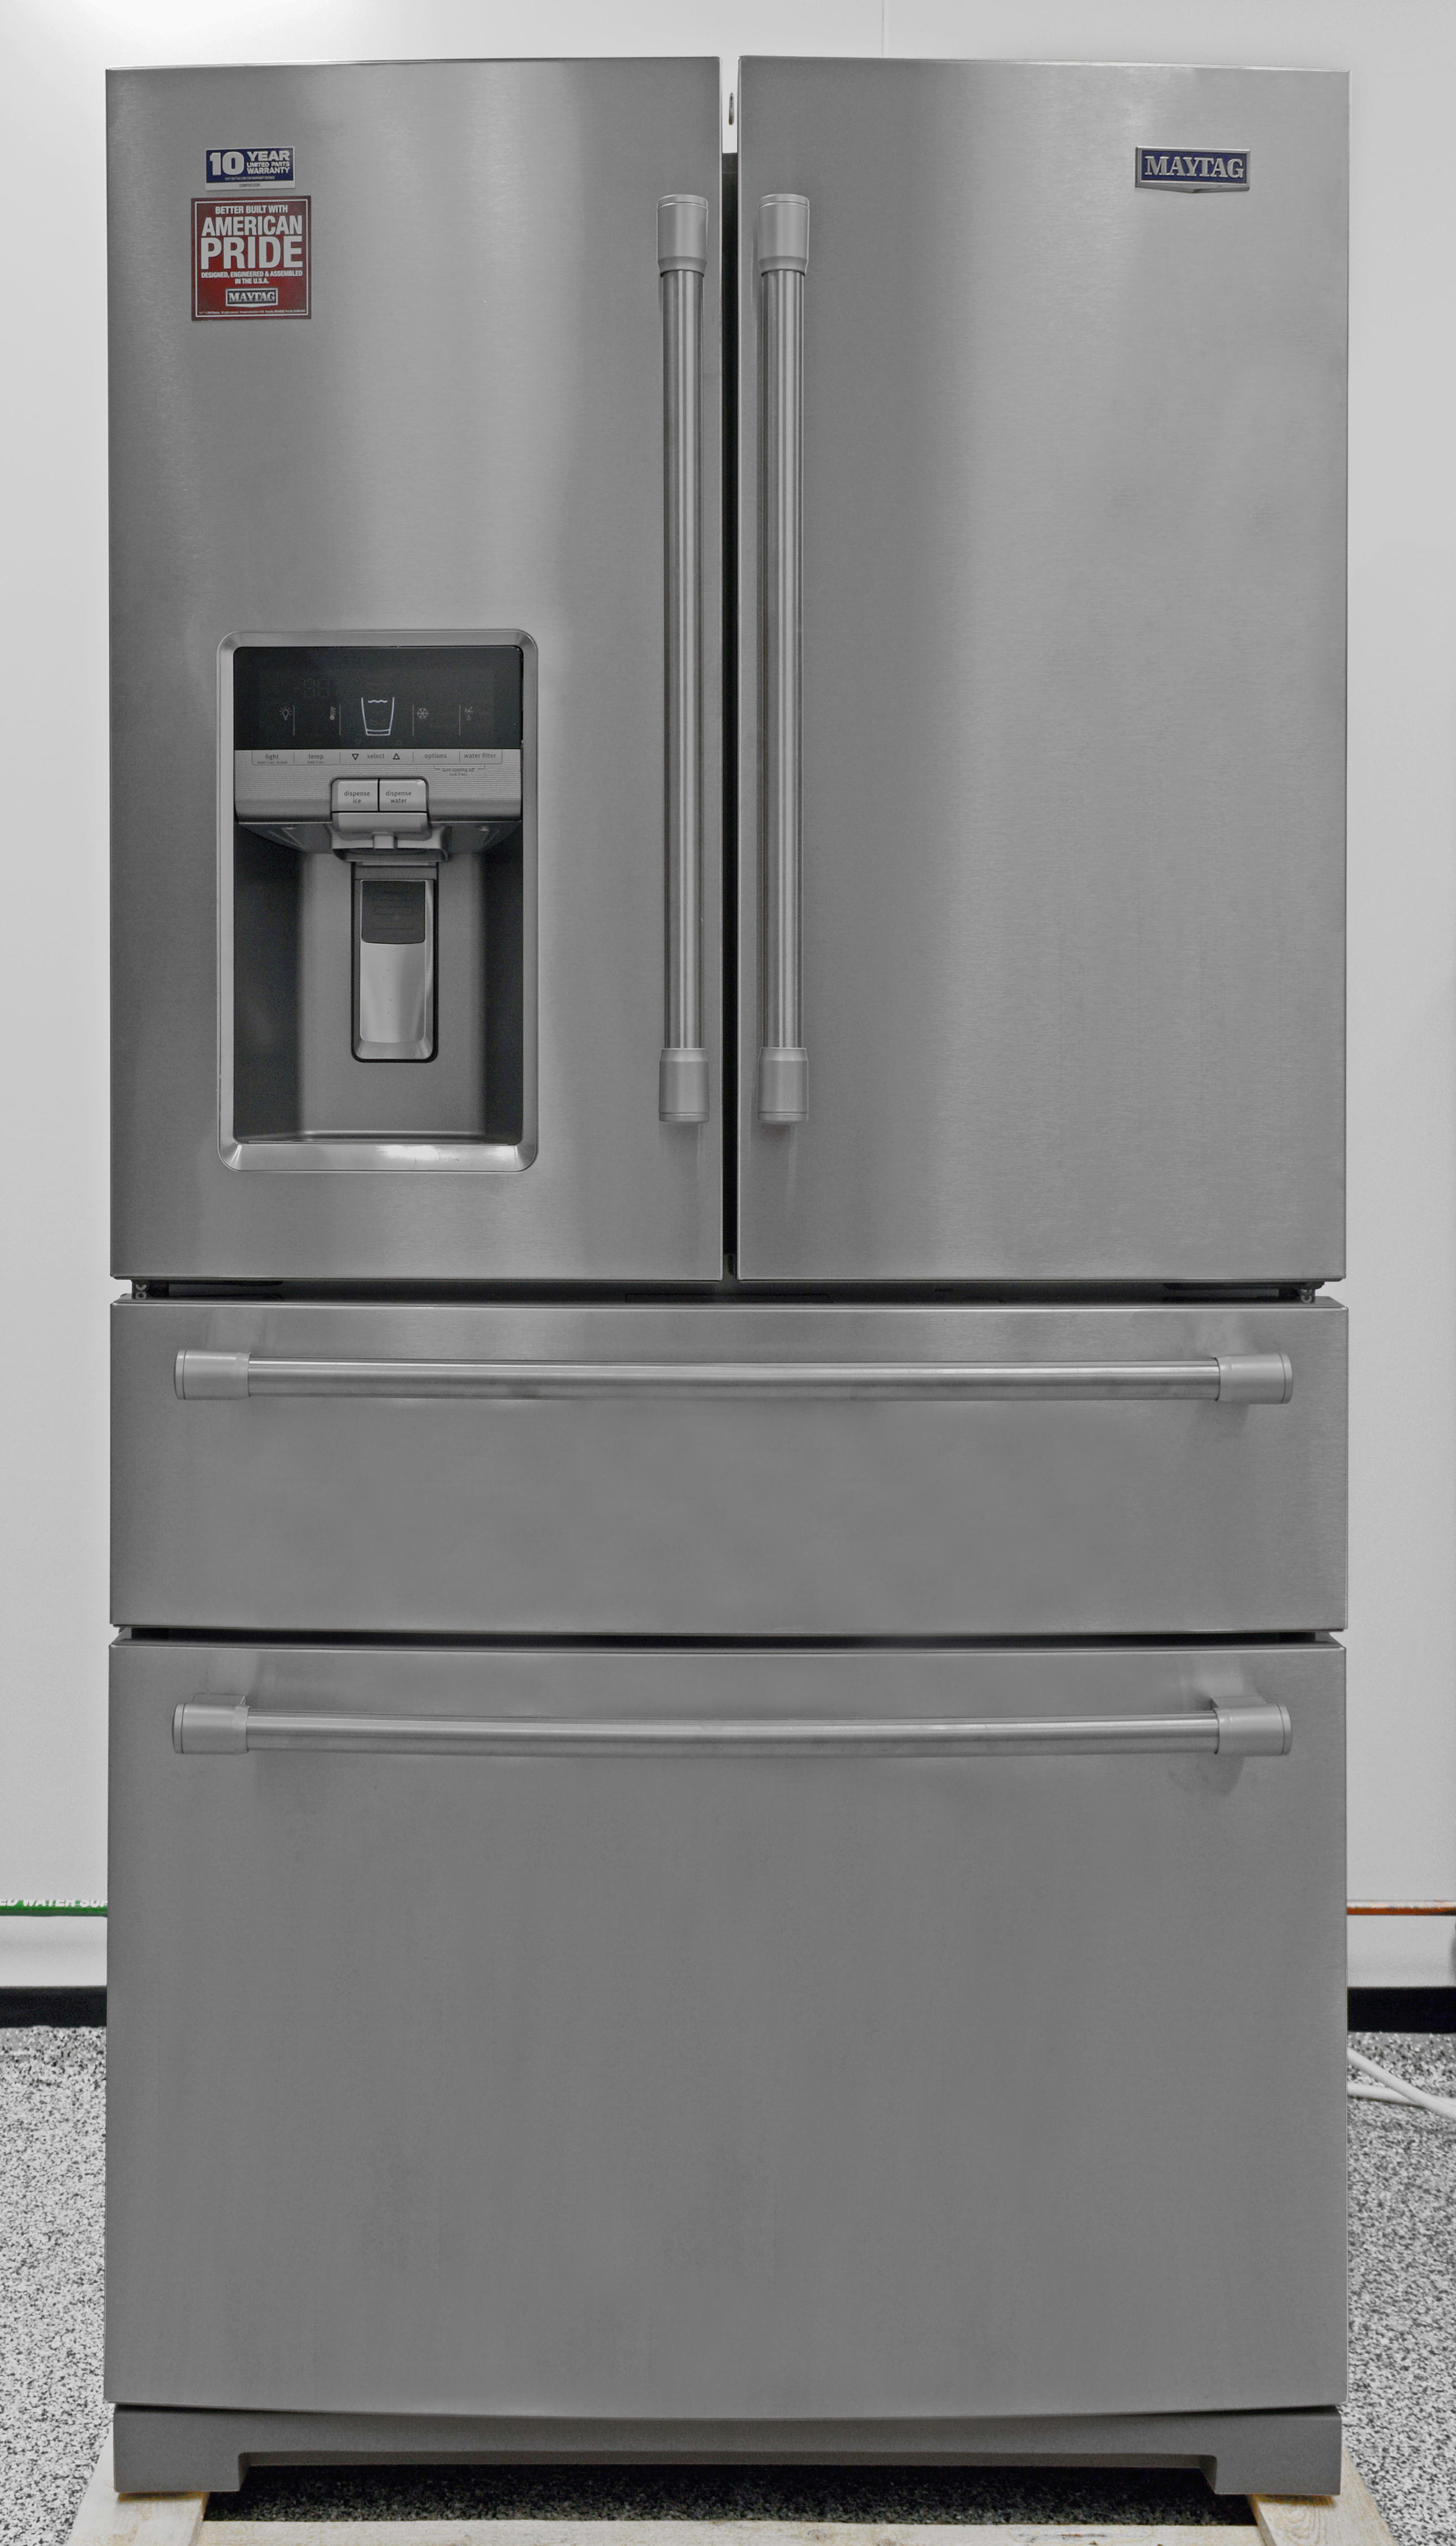 The aesthetic vibe of the Maytag MFX2876DRM is definitely industrial.